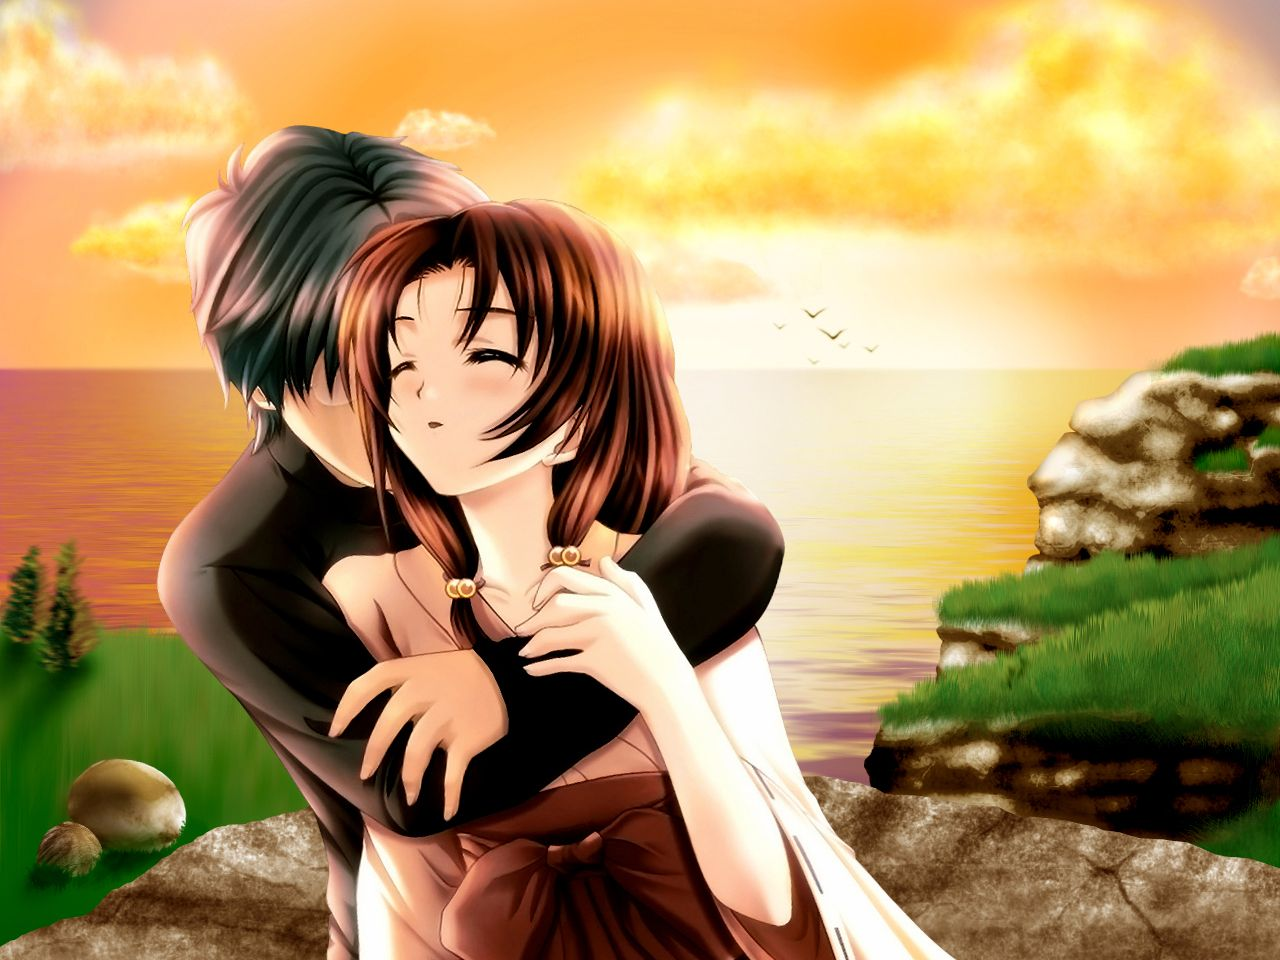 Romantic Couples Anime Wallpapers Loveromantic Wallpapers Chobirdokan